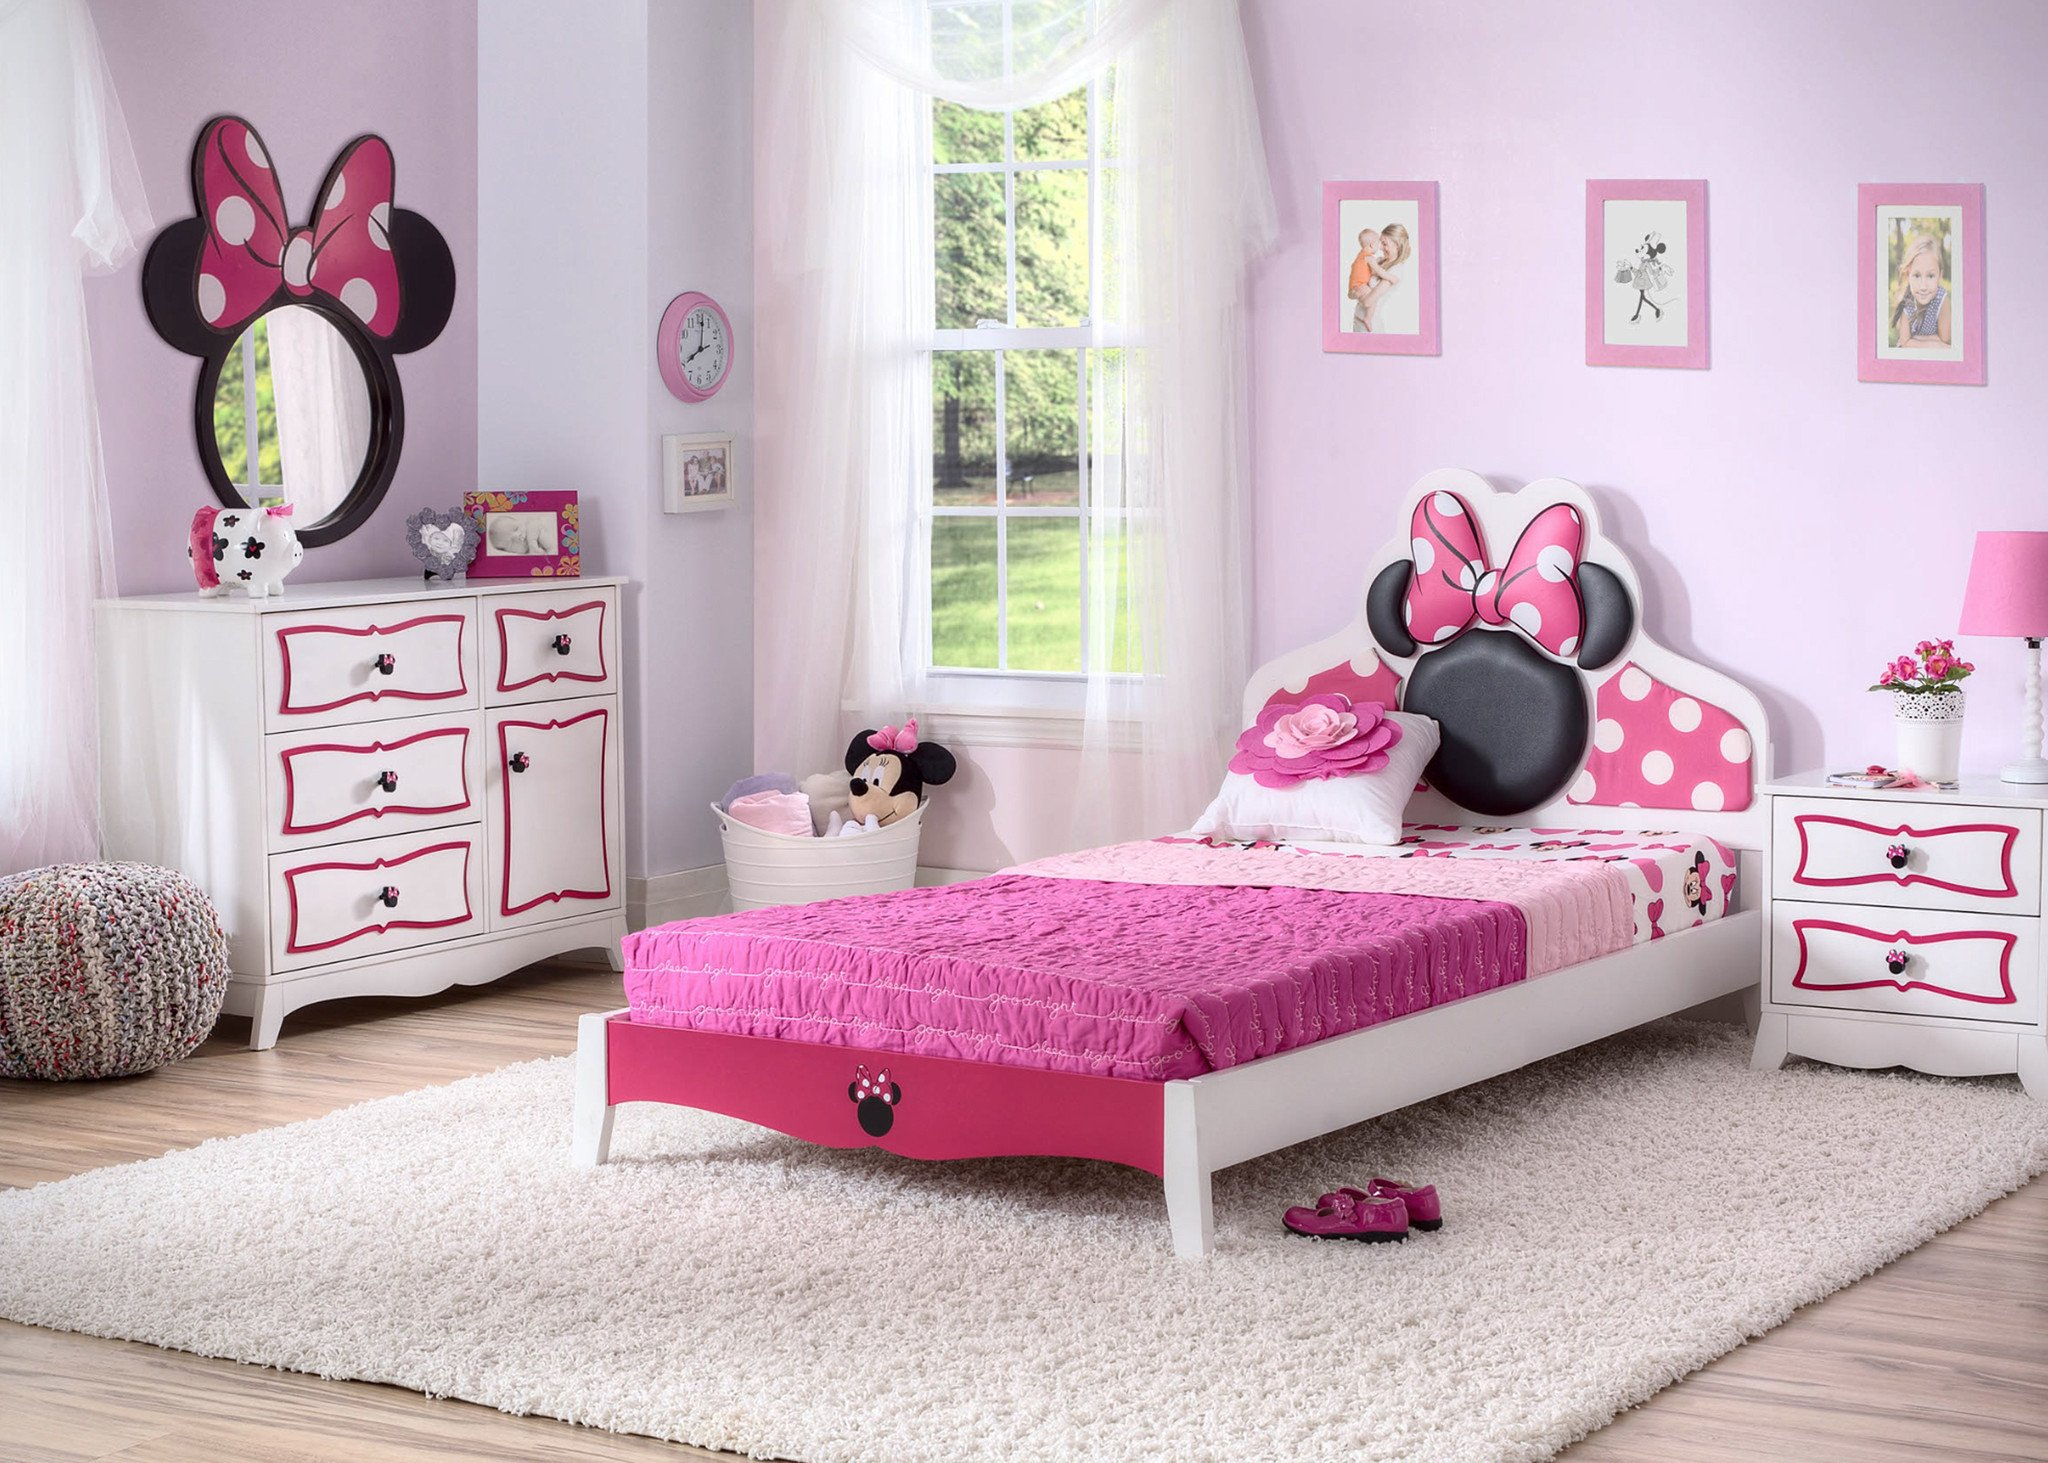 Minnie Mouse Bedroom Ideas Unique Take A Look at these Awesome Minnie Mouse Bedroom Items